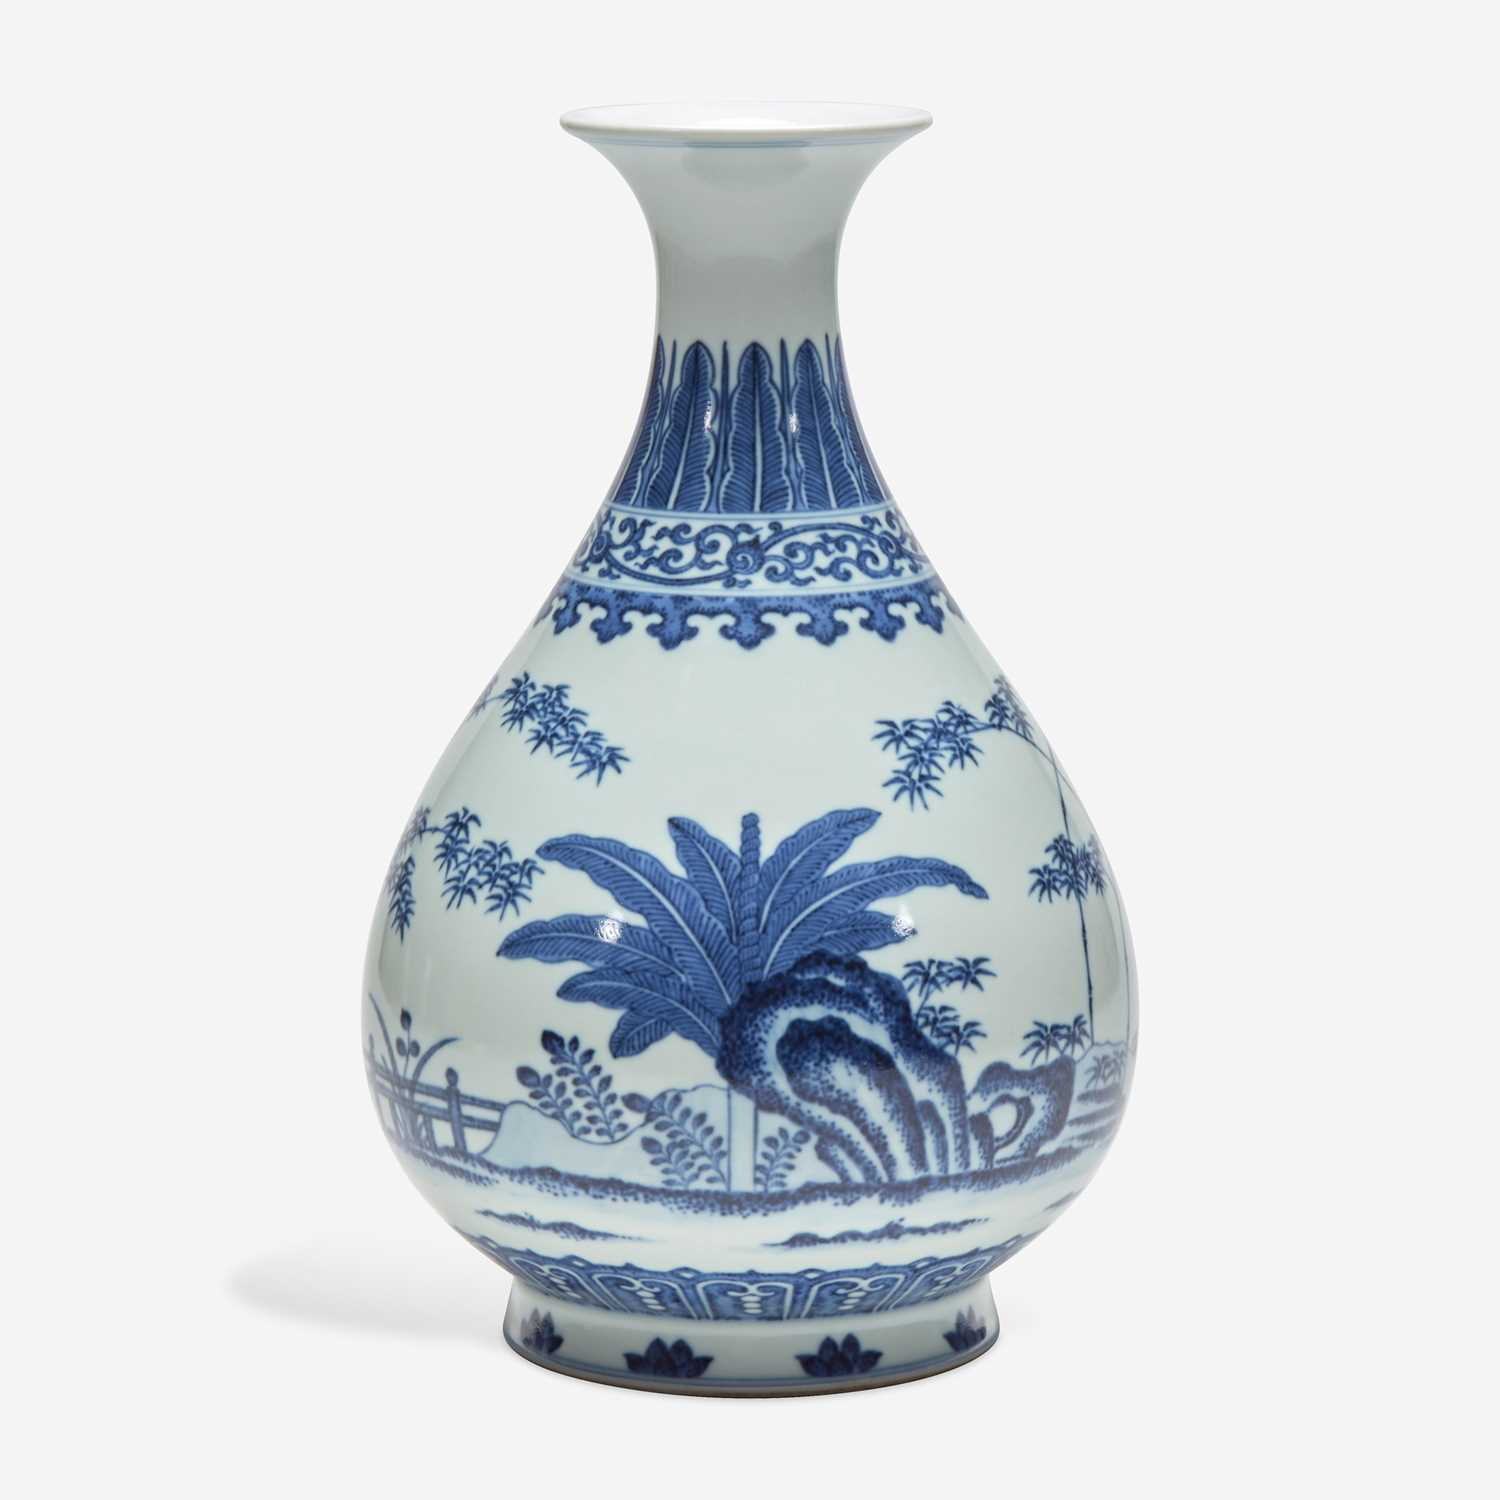 Lot 28 - A Chinese blue and white porcelain vase, Yuhuchunping 青花玉壶春瓶